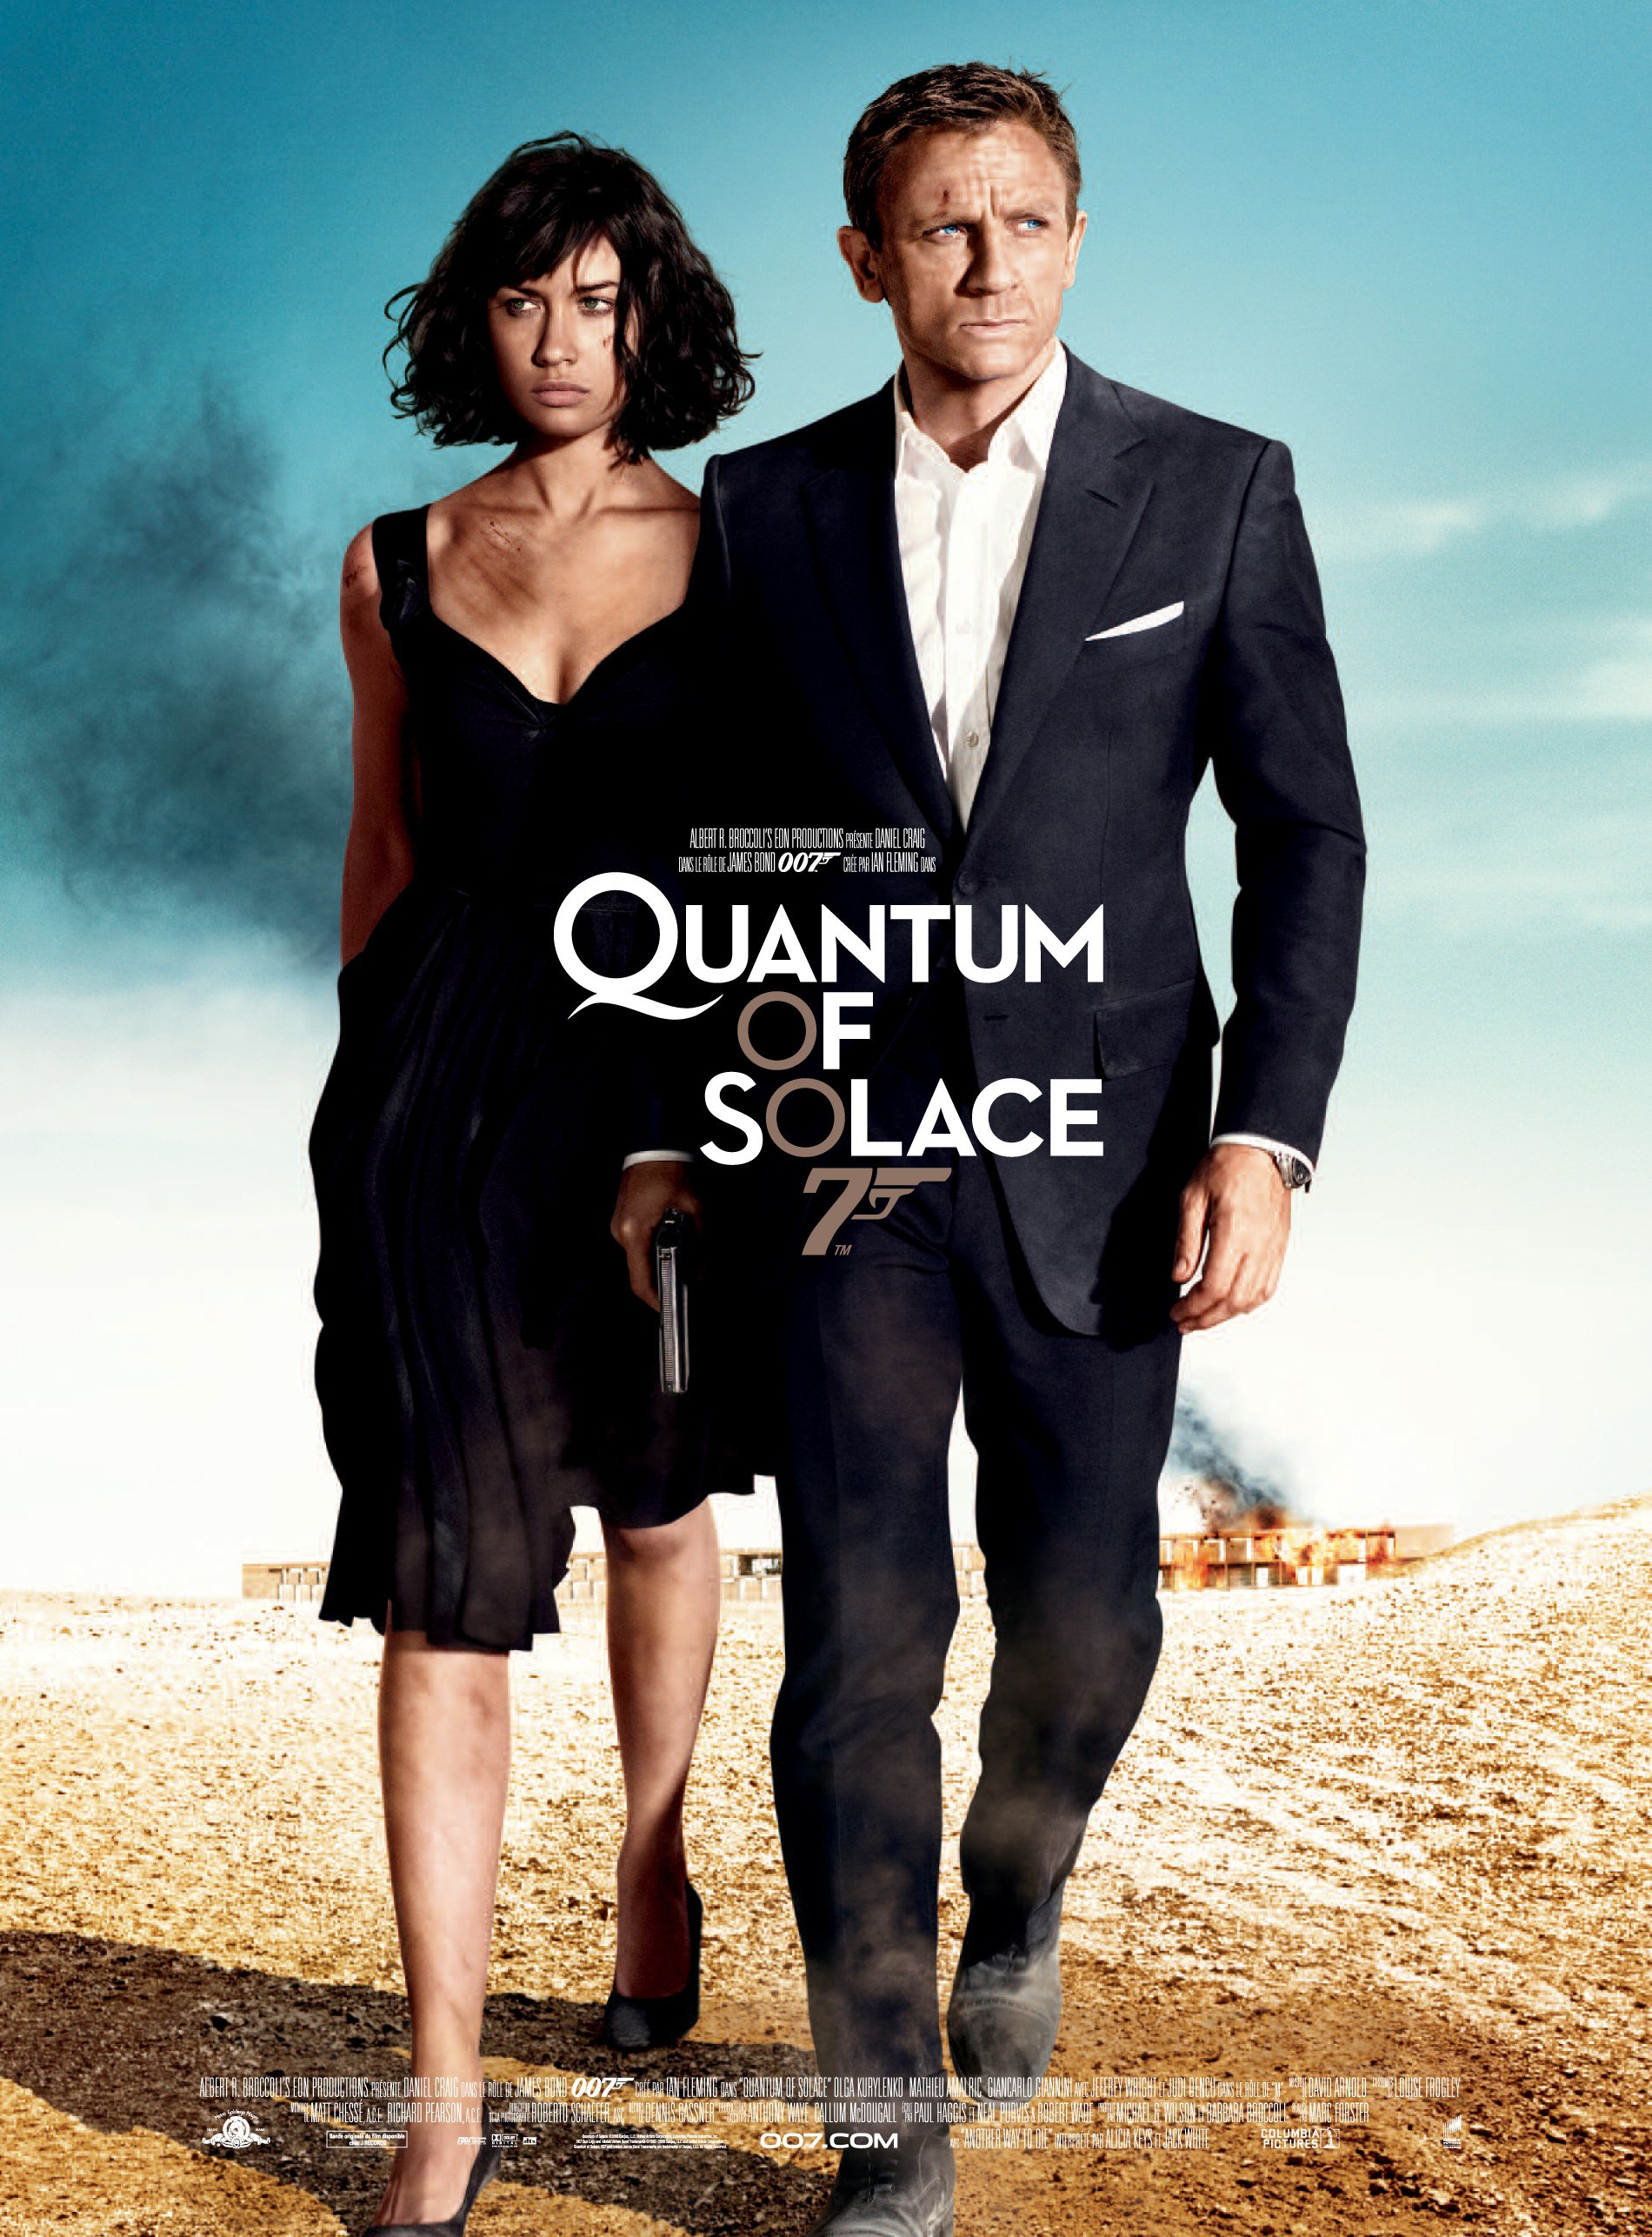 Affiche du film Quantum of Solace 007